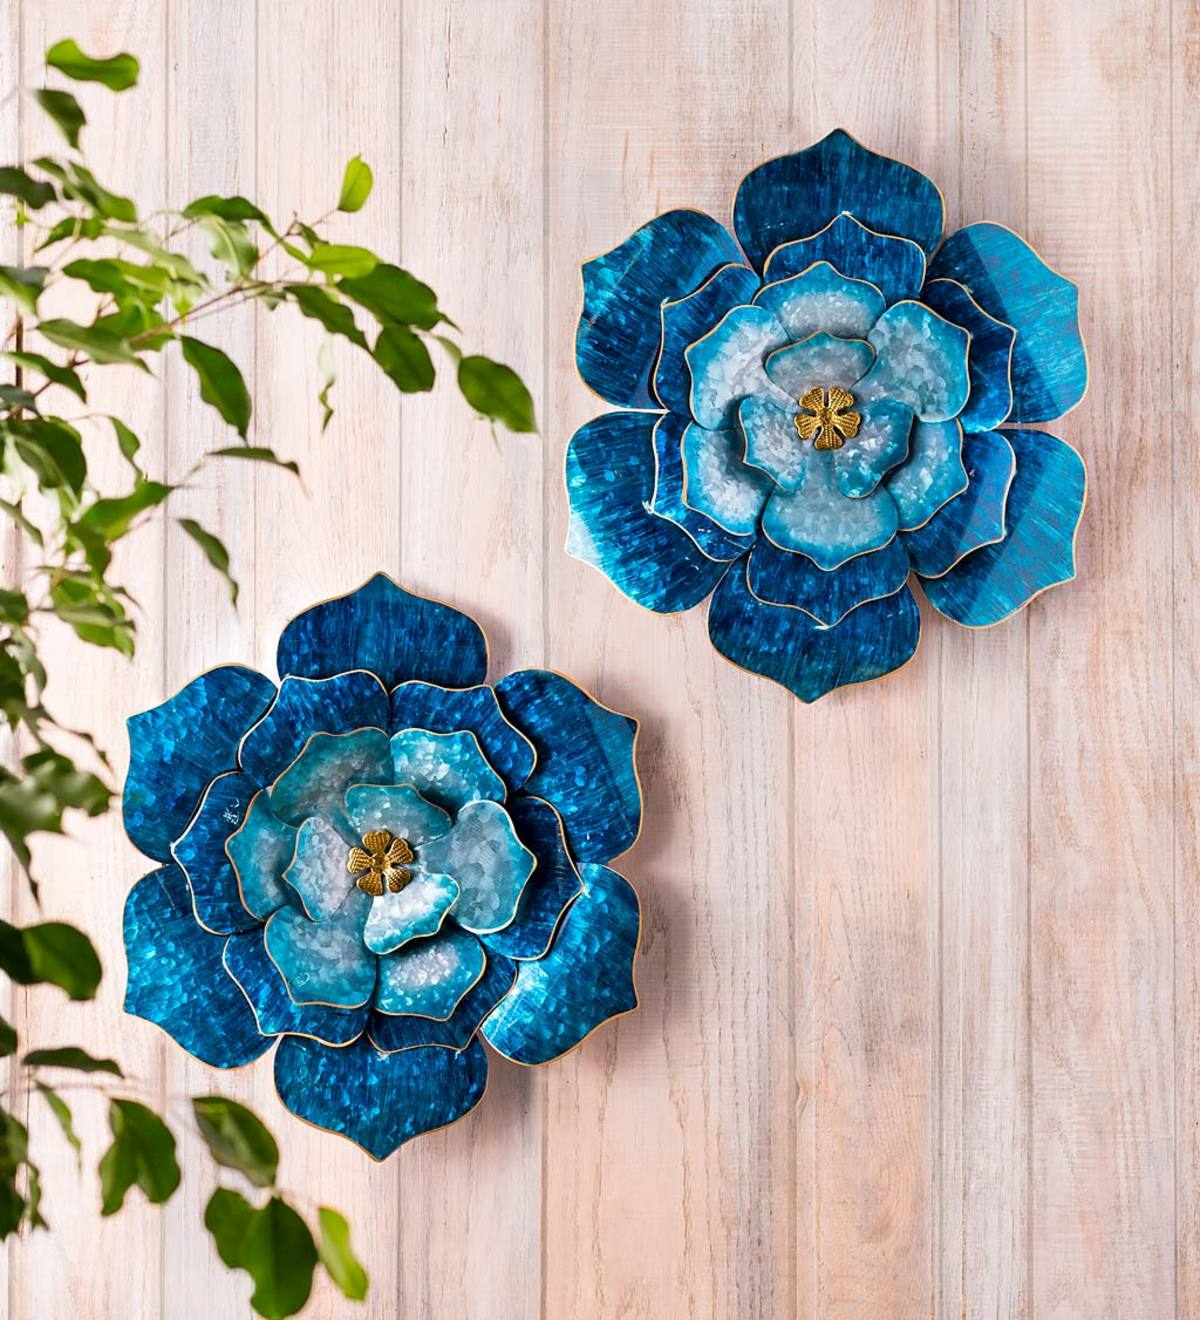 Handcrafted Blue Metal Flower with Golden Center Wall Art